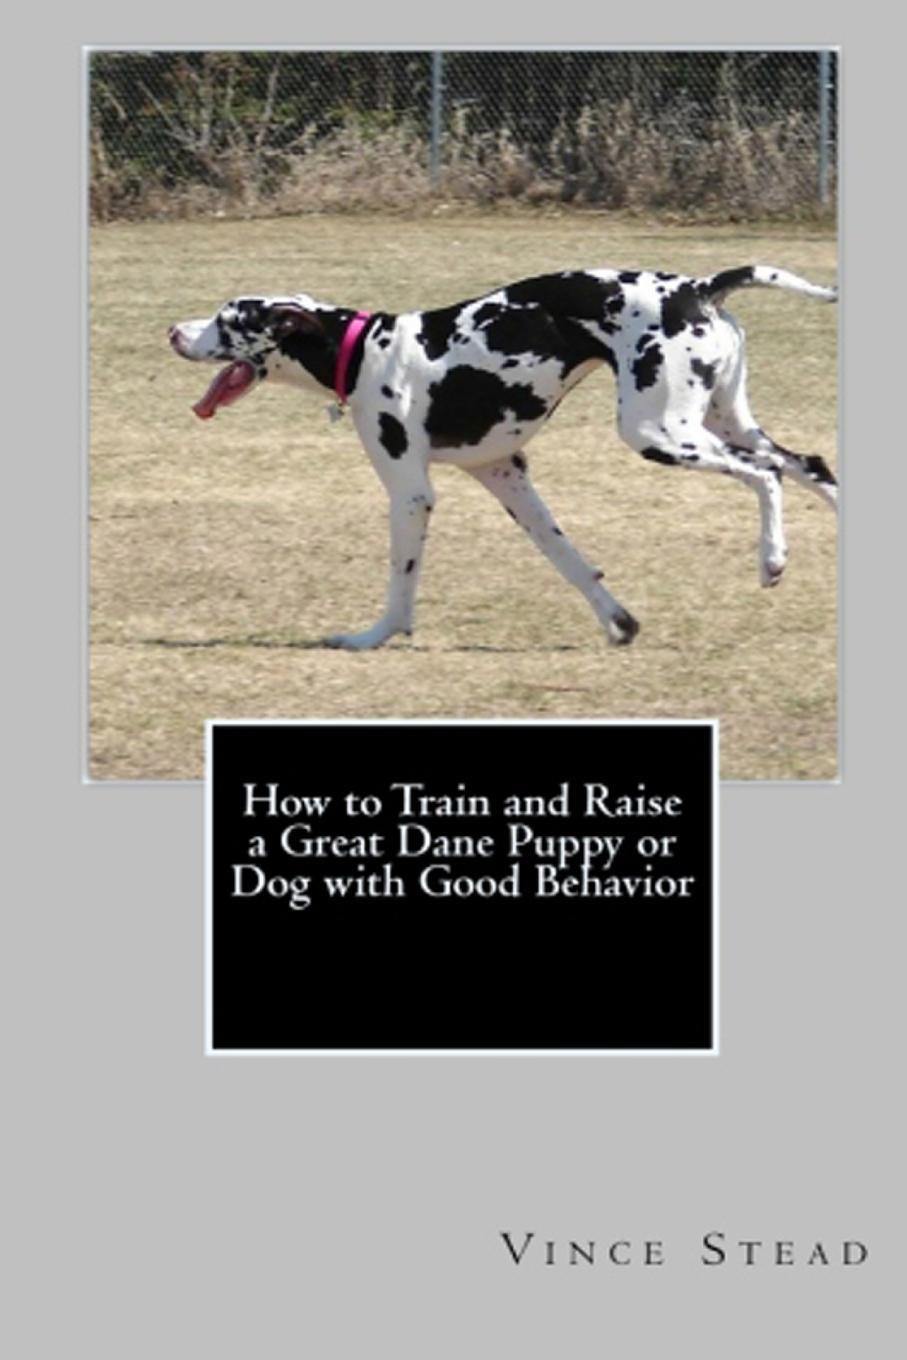 Vince Stead How to Train and Raise a Great Dane Puppy or Dog with Good Behavior michael burchell no excuses how you can turn any workplace into a great one